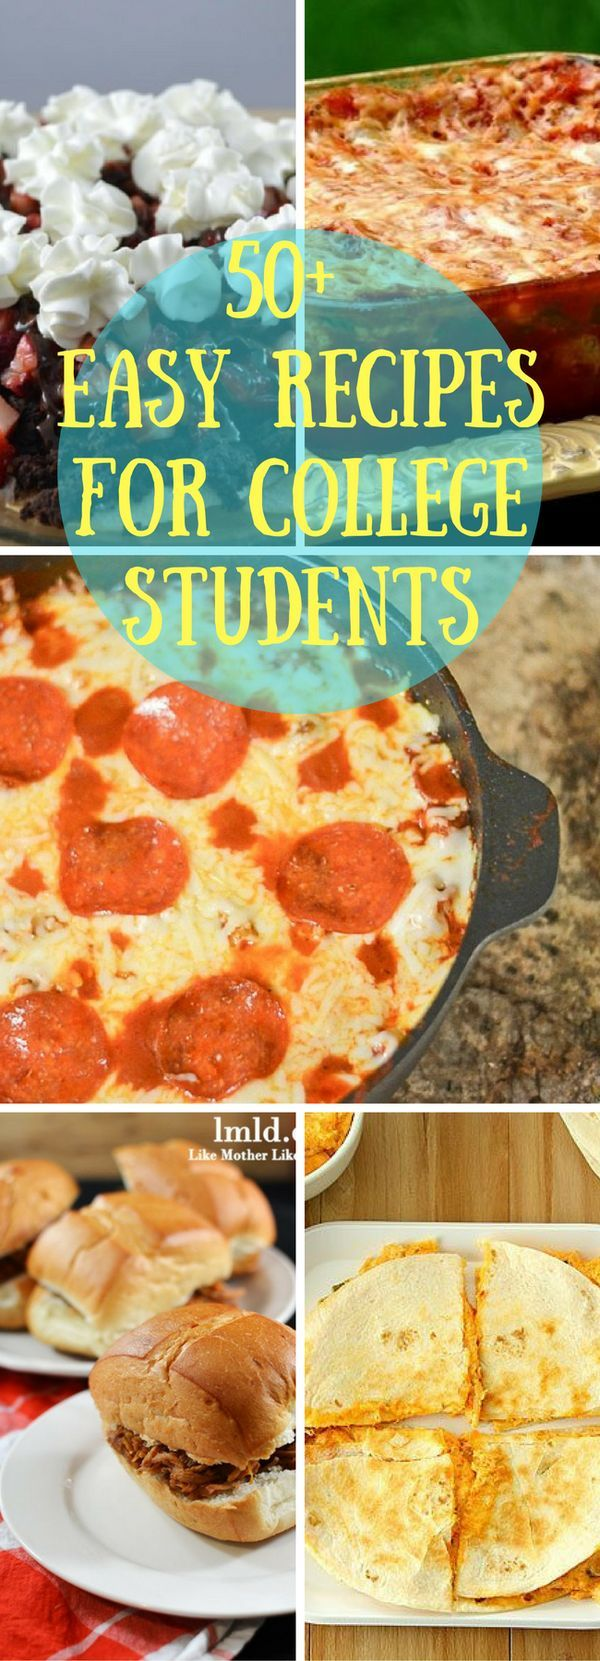 If you're looking for easy recipes, look no further! Here are 50+ easy recipes that are even easy for the busy life of a college student!